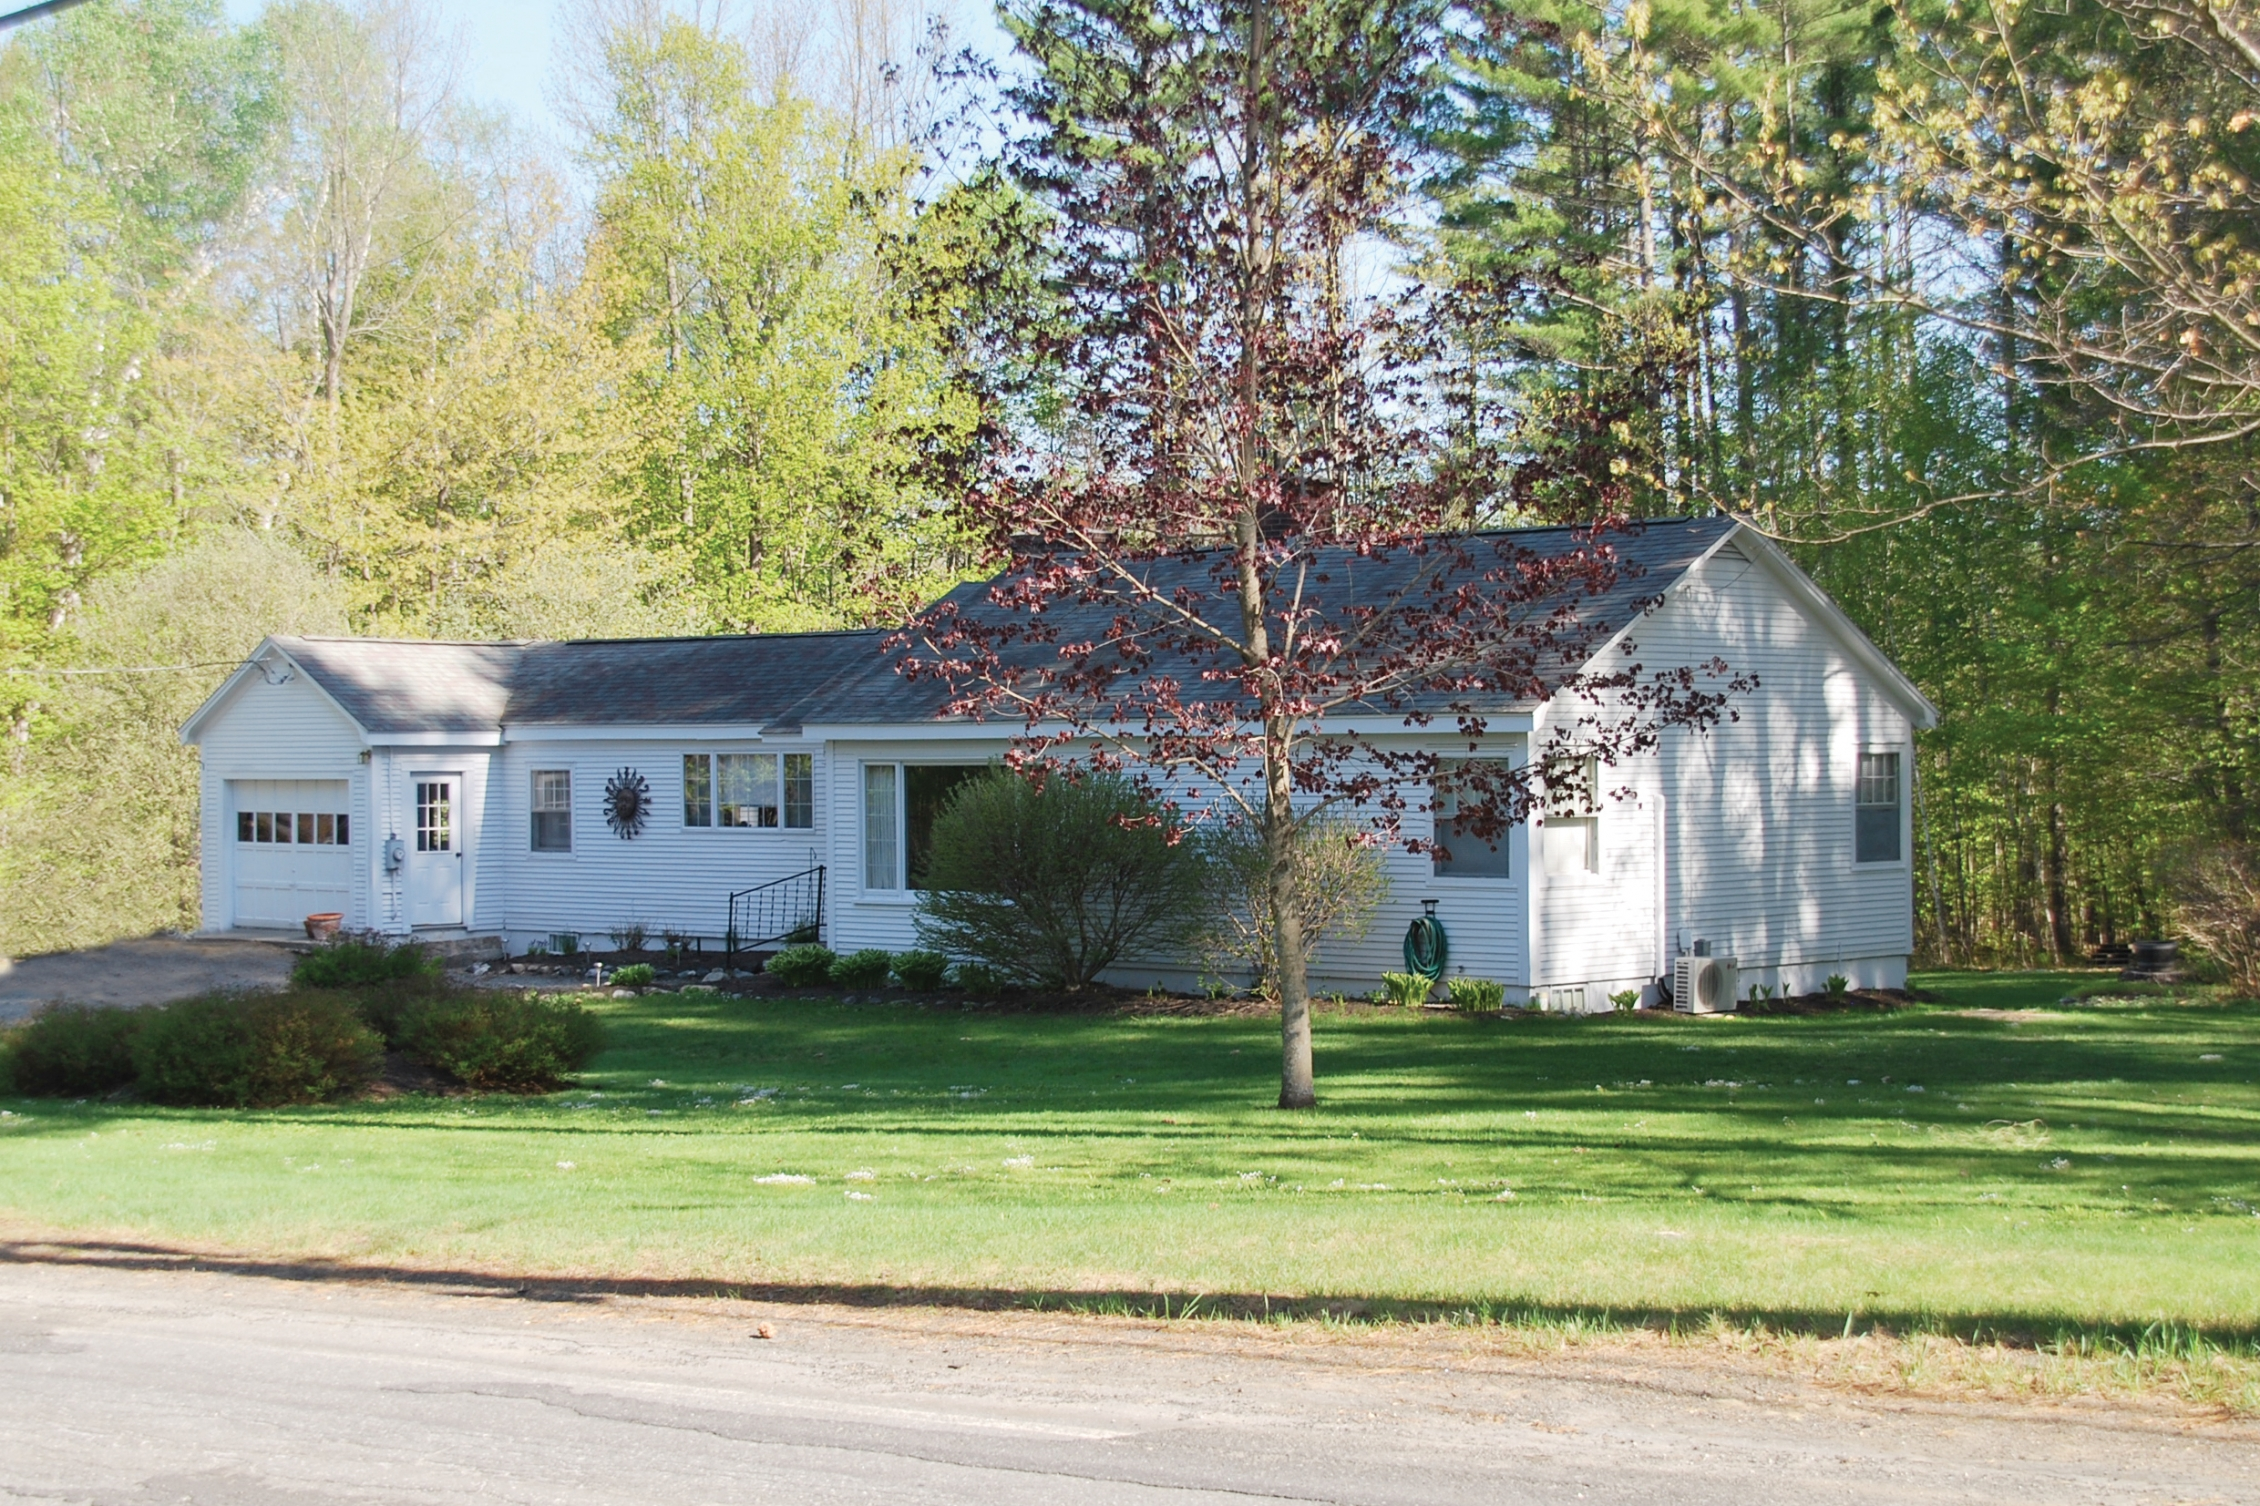 Single Family Home for Sale at Well Maintained Ranc 344 Canaan St Canaan, New Hampshire 03741 United States